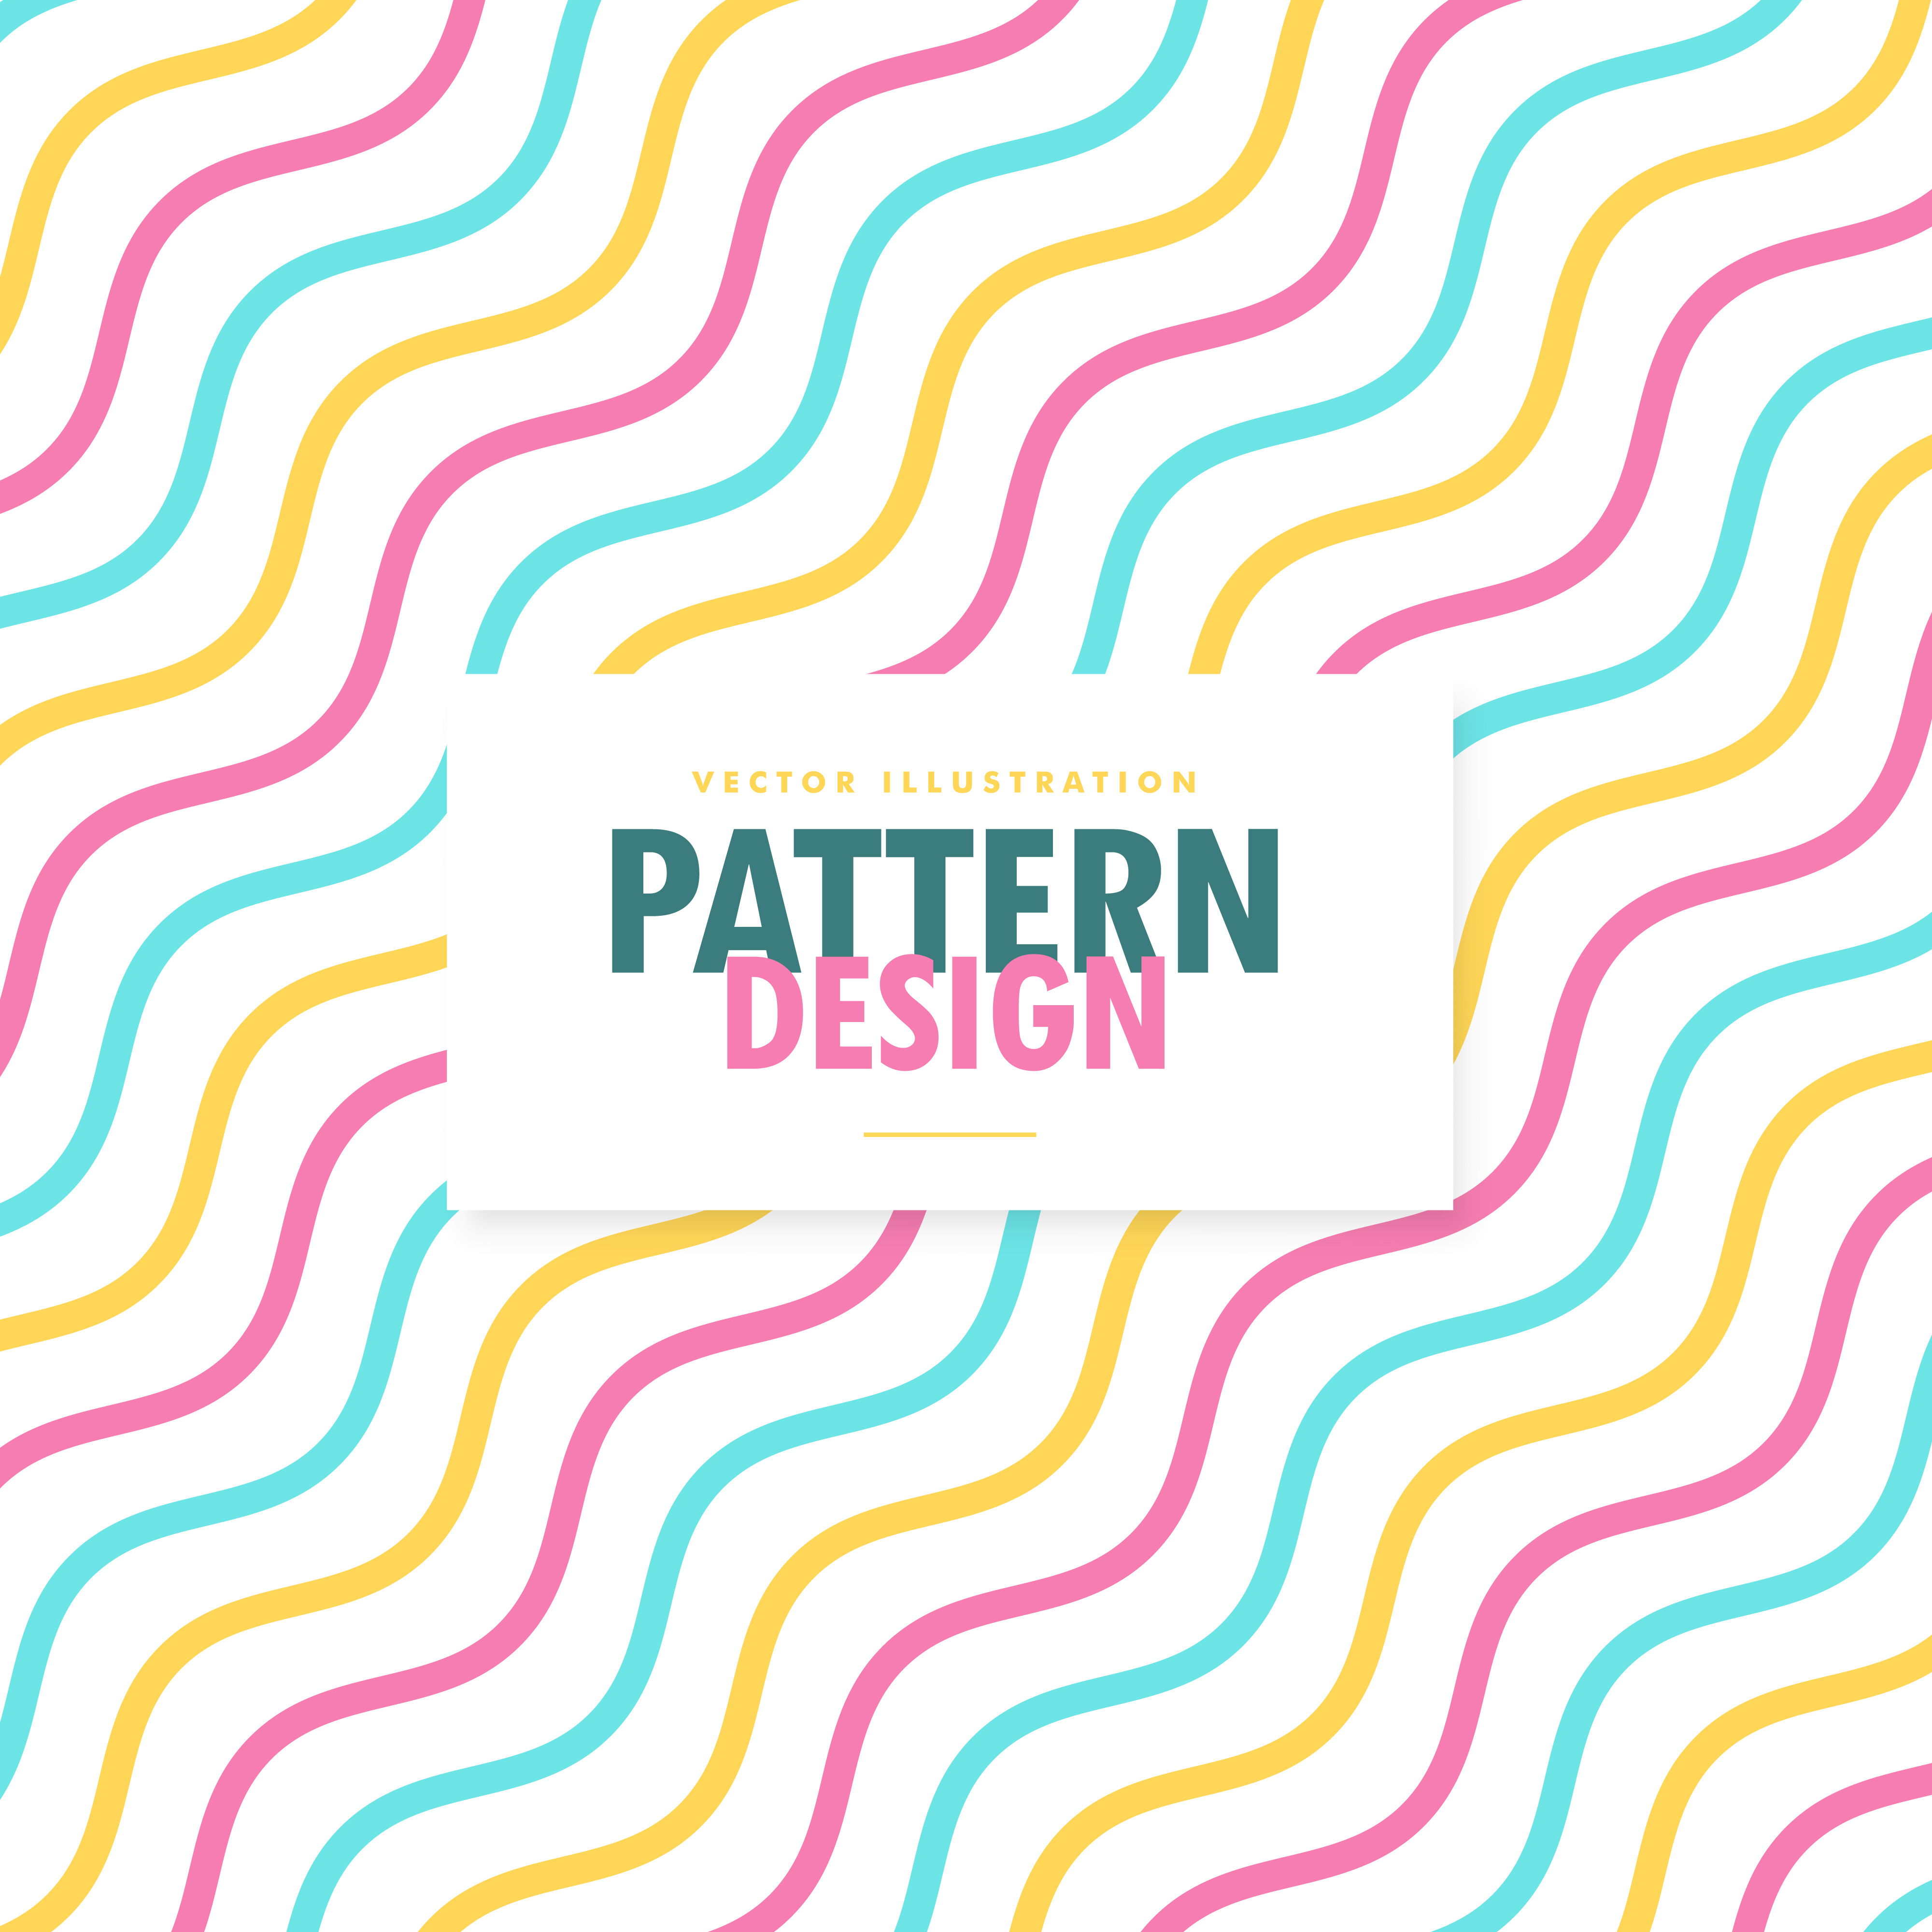 4000x4000 Wavy Pattern Free Vector Art